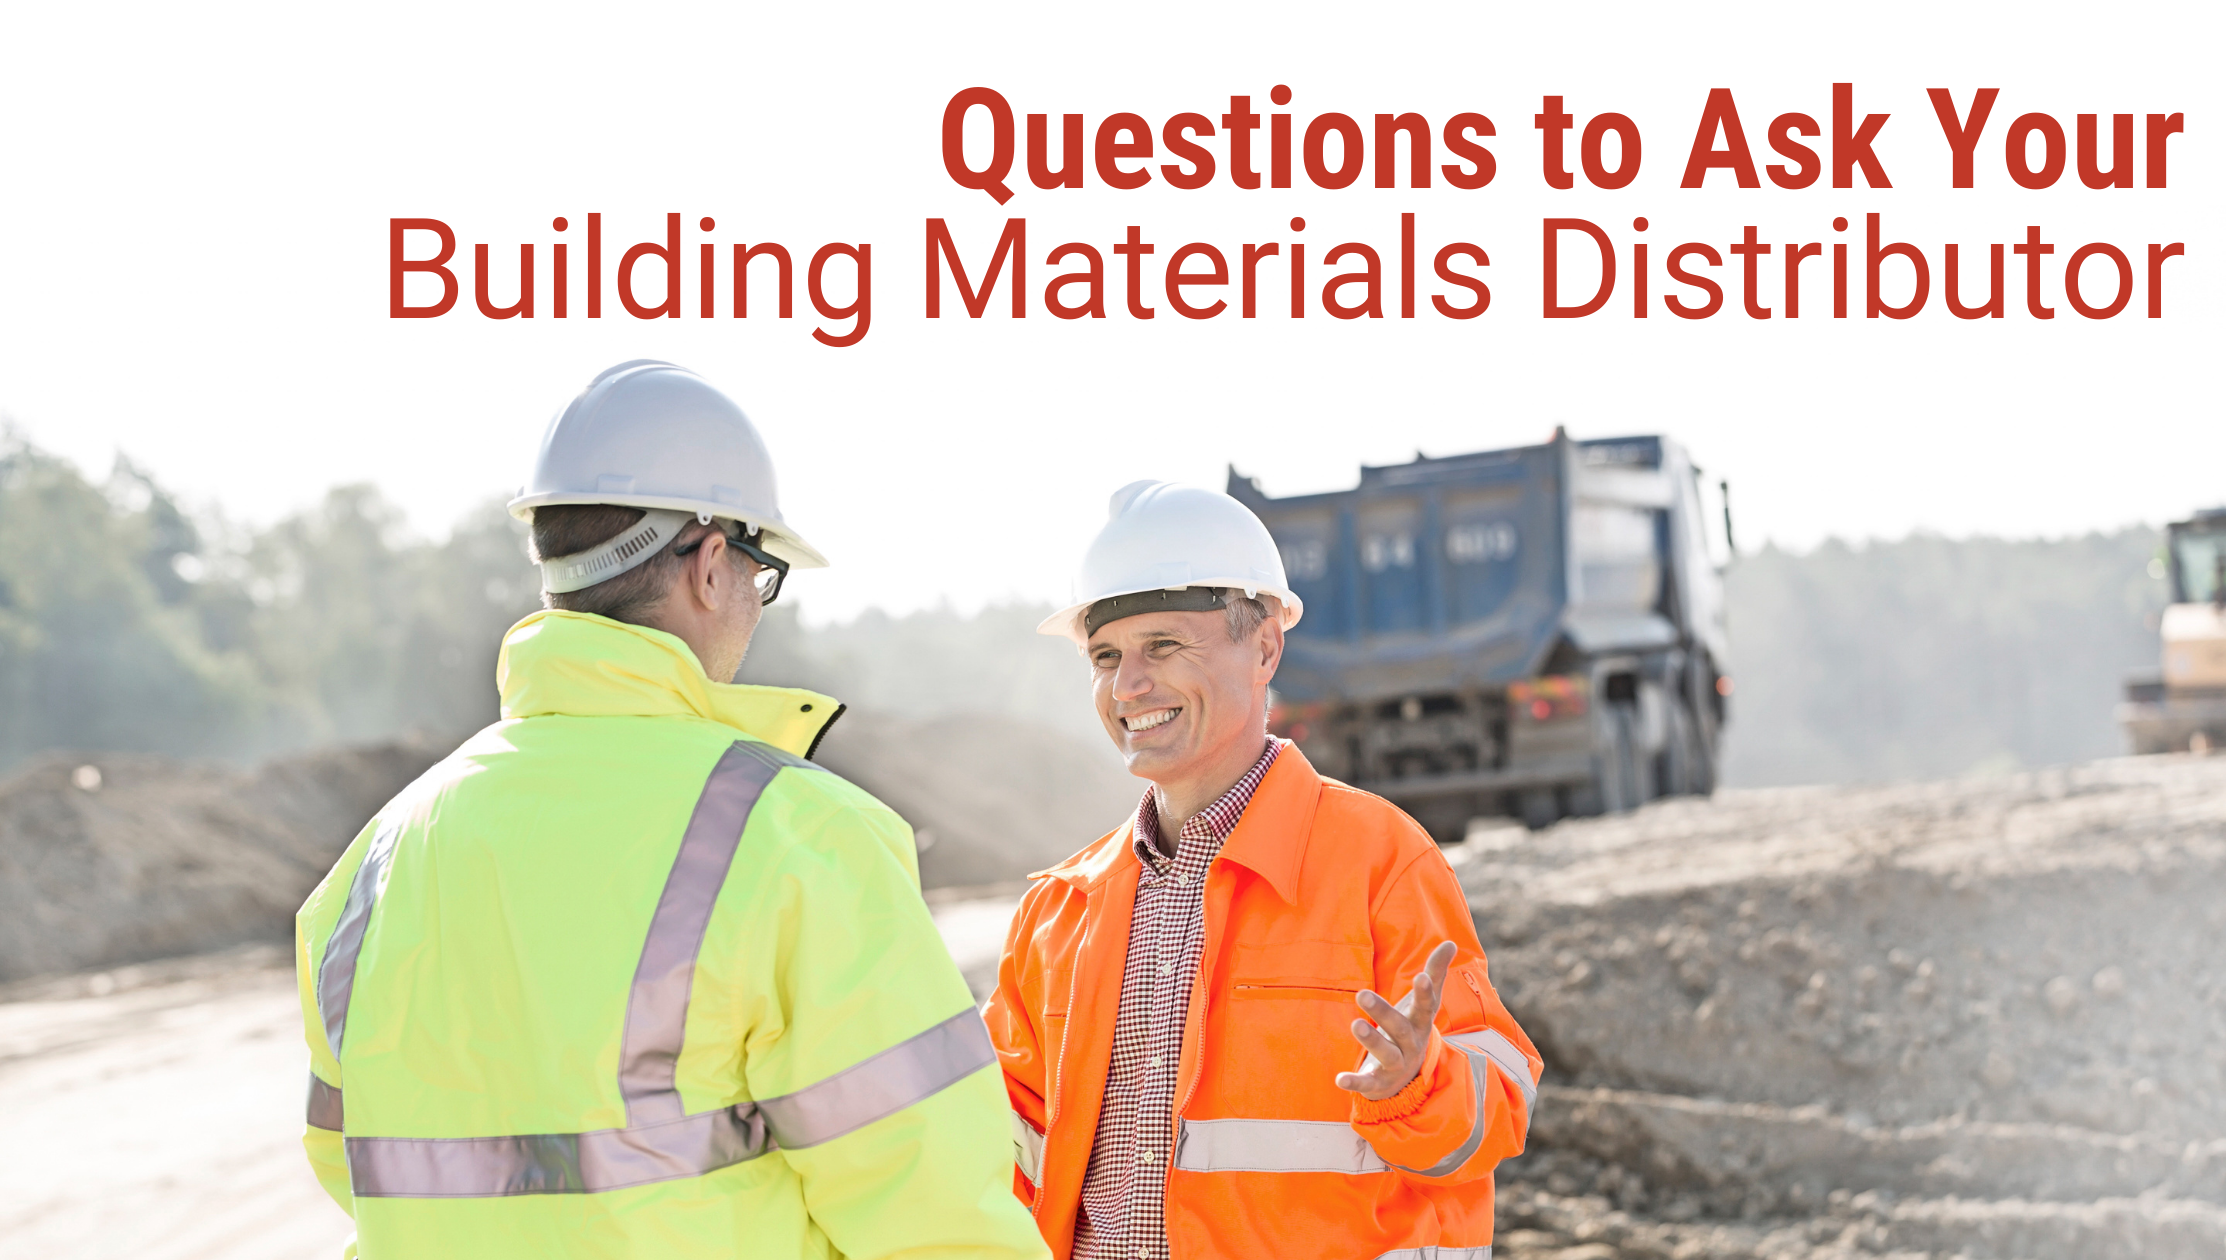 Questions to Ask Your Building Materials Distributor